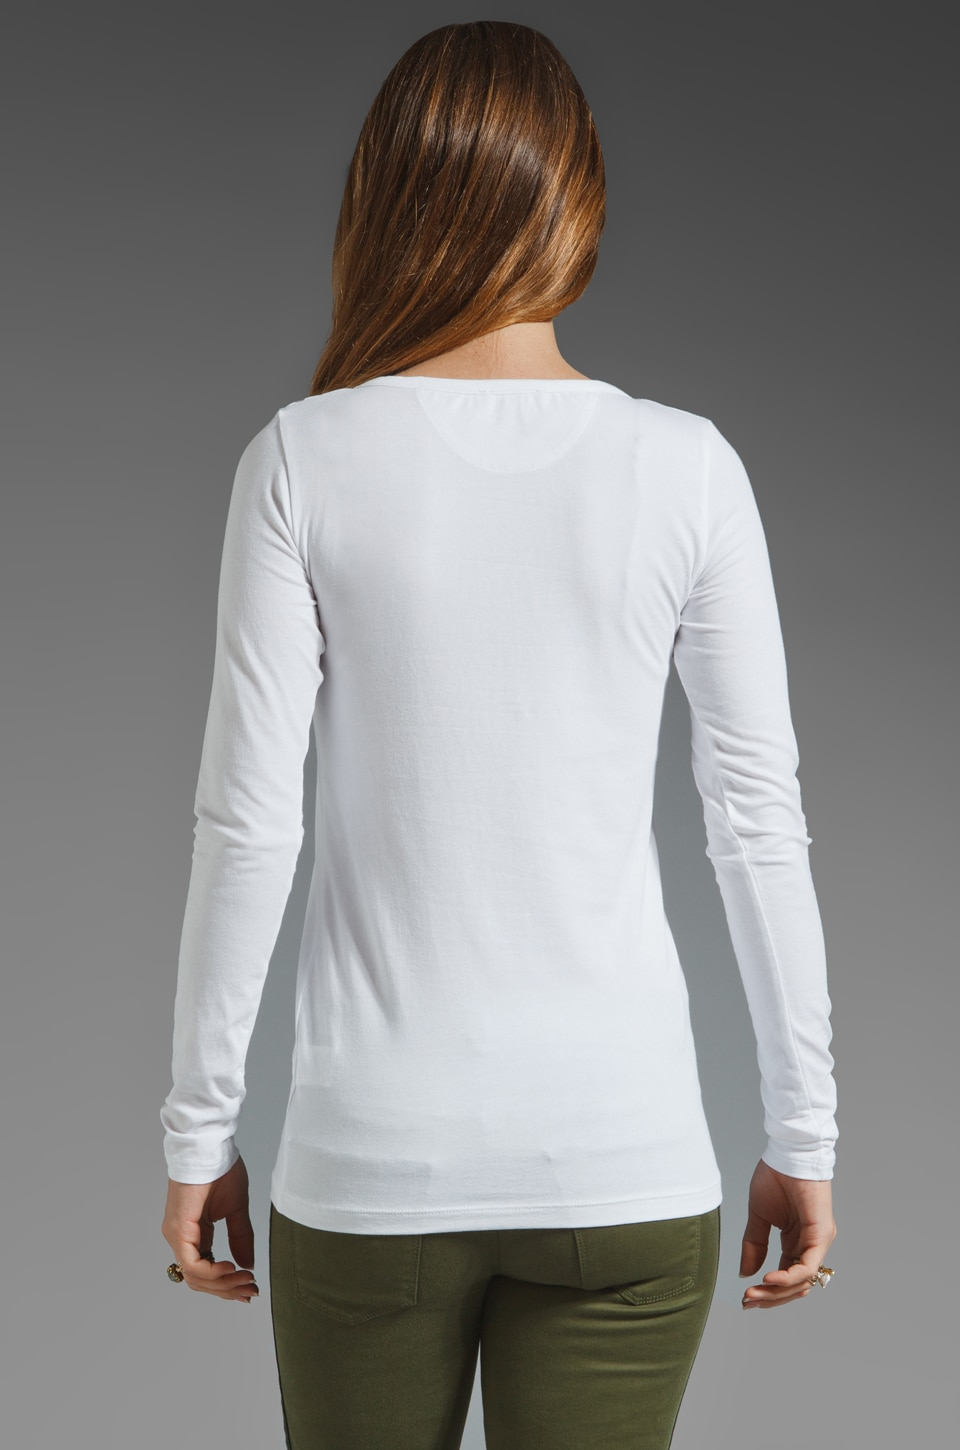 Theory Encase Brioan Top in White